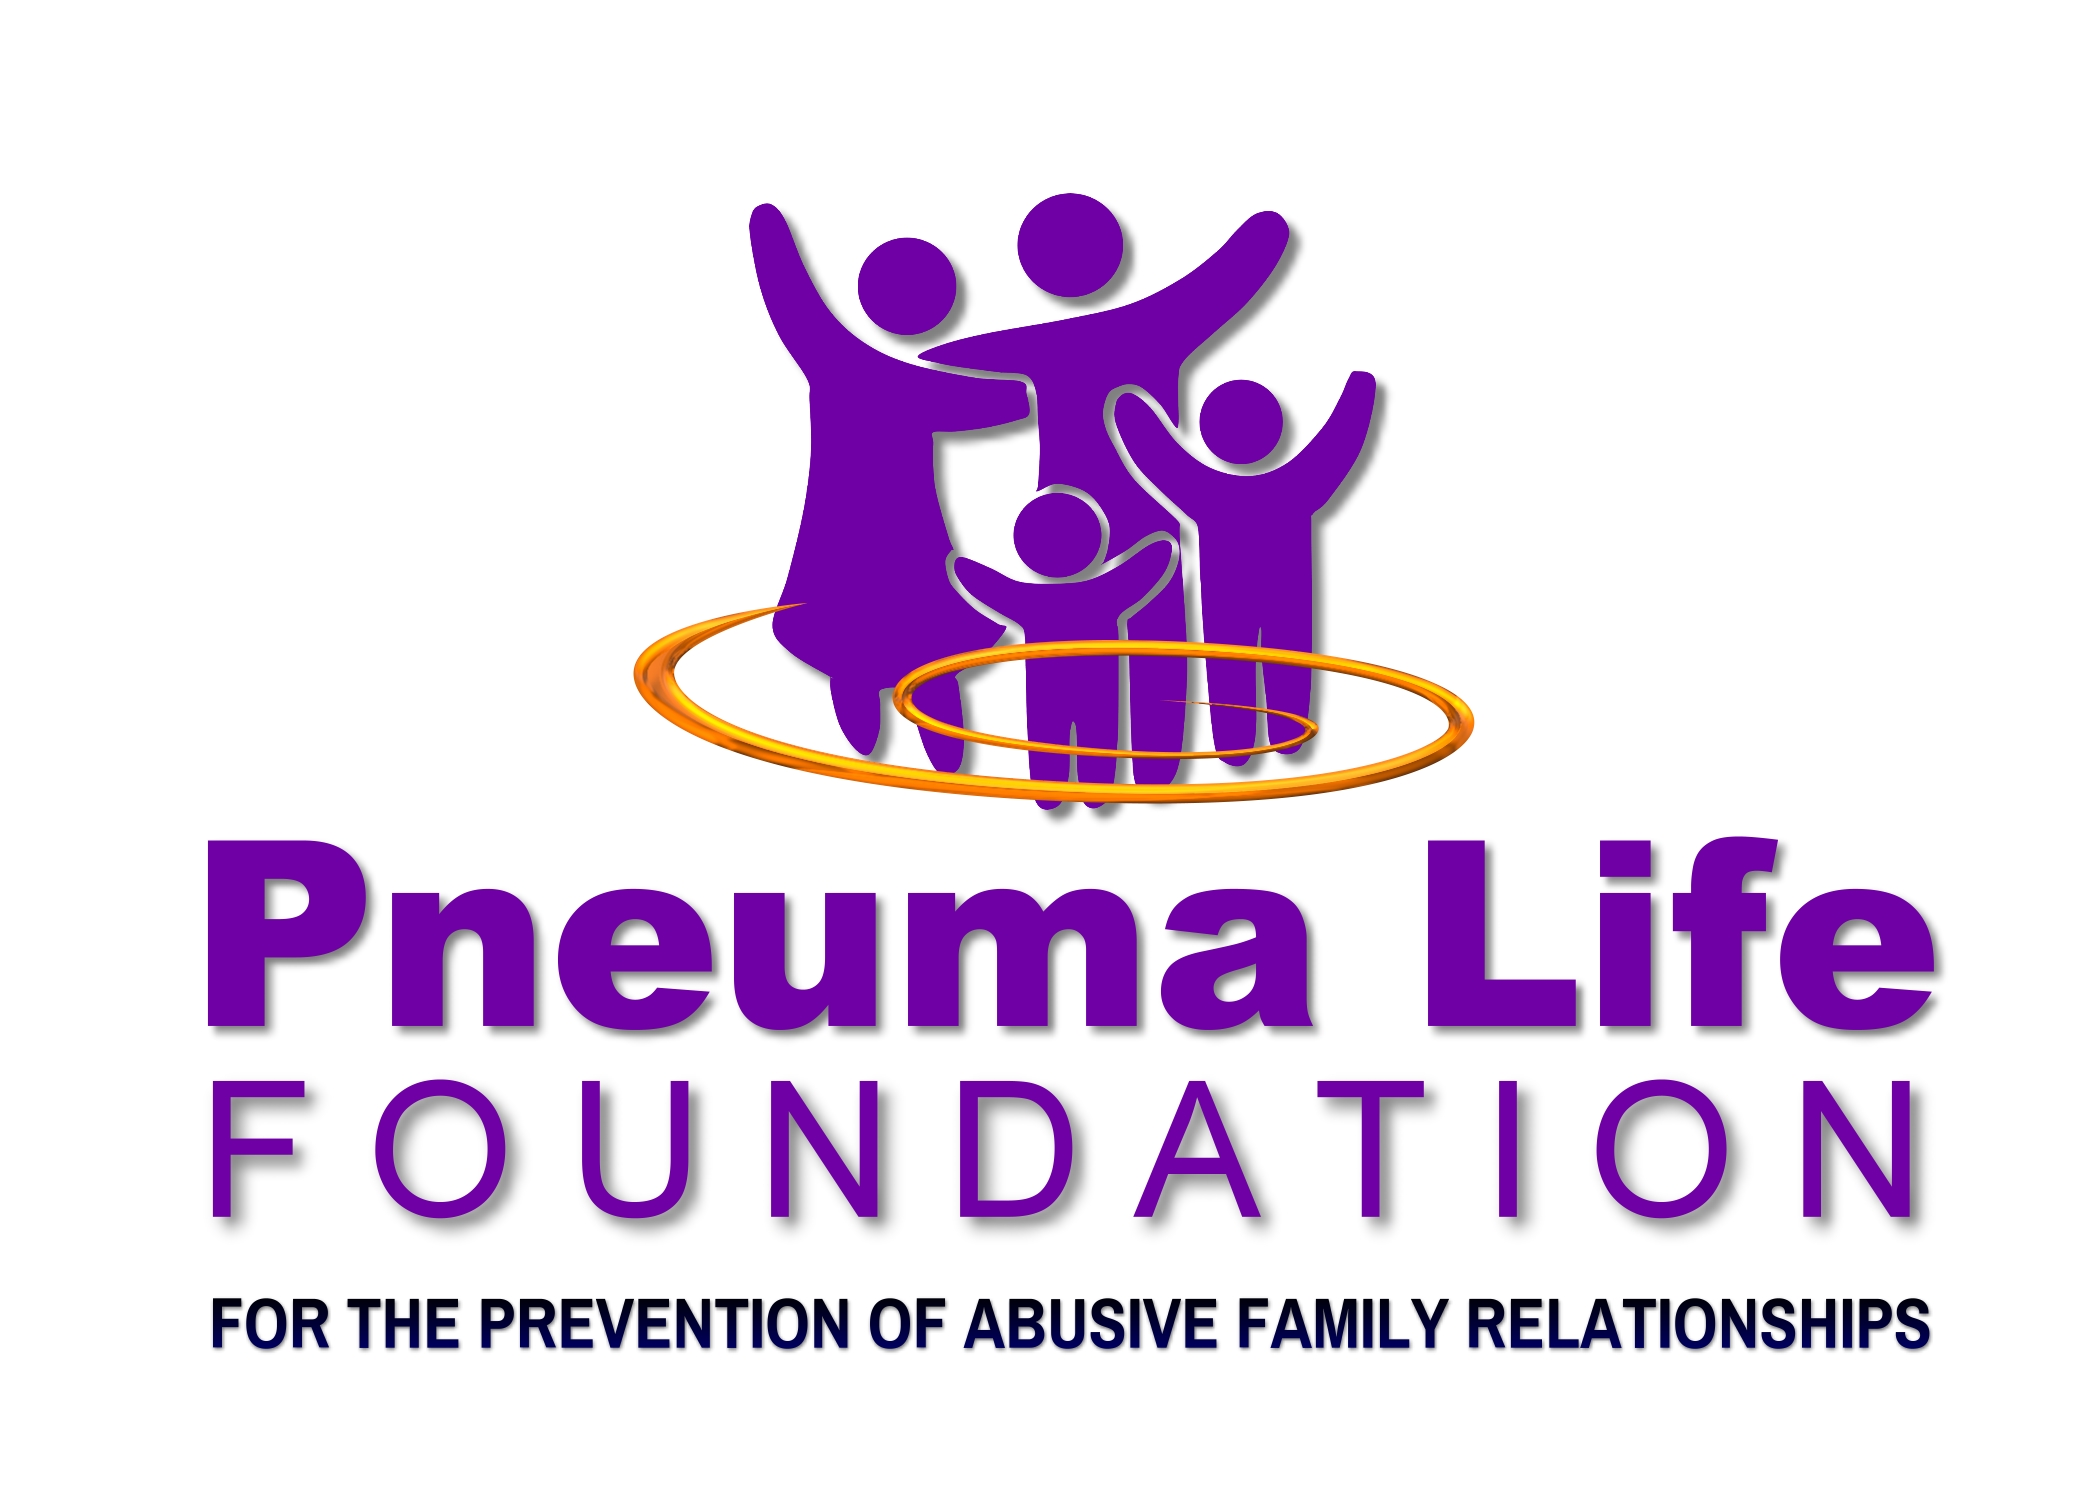 Pneuma Life Foundation